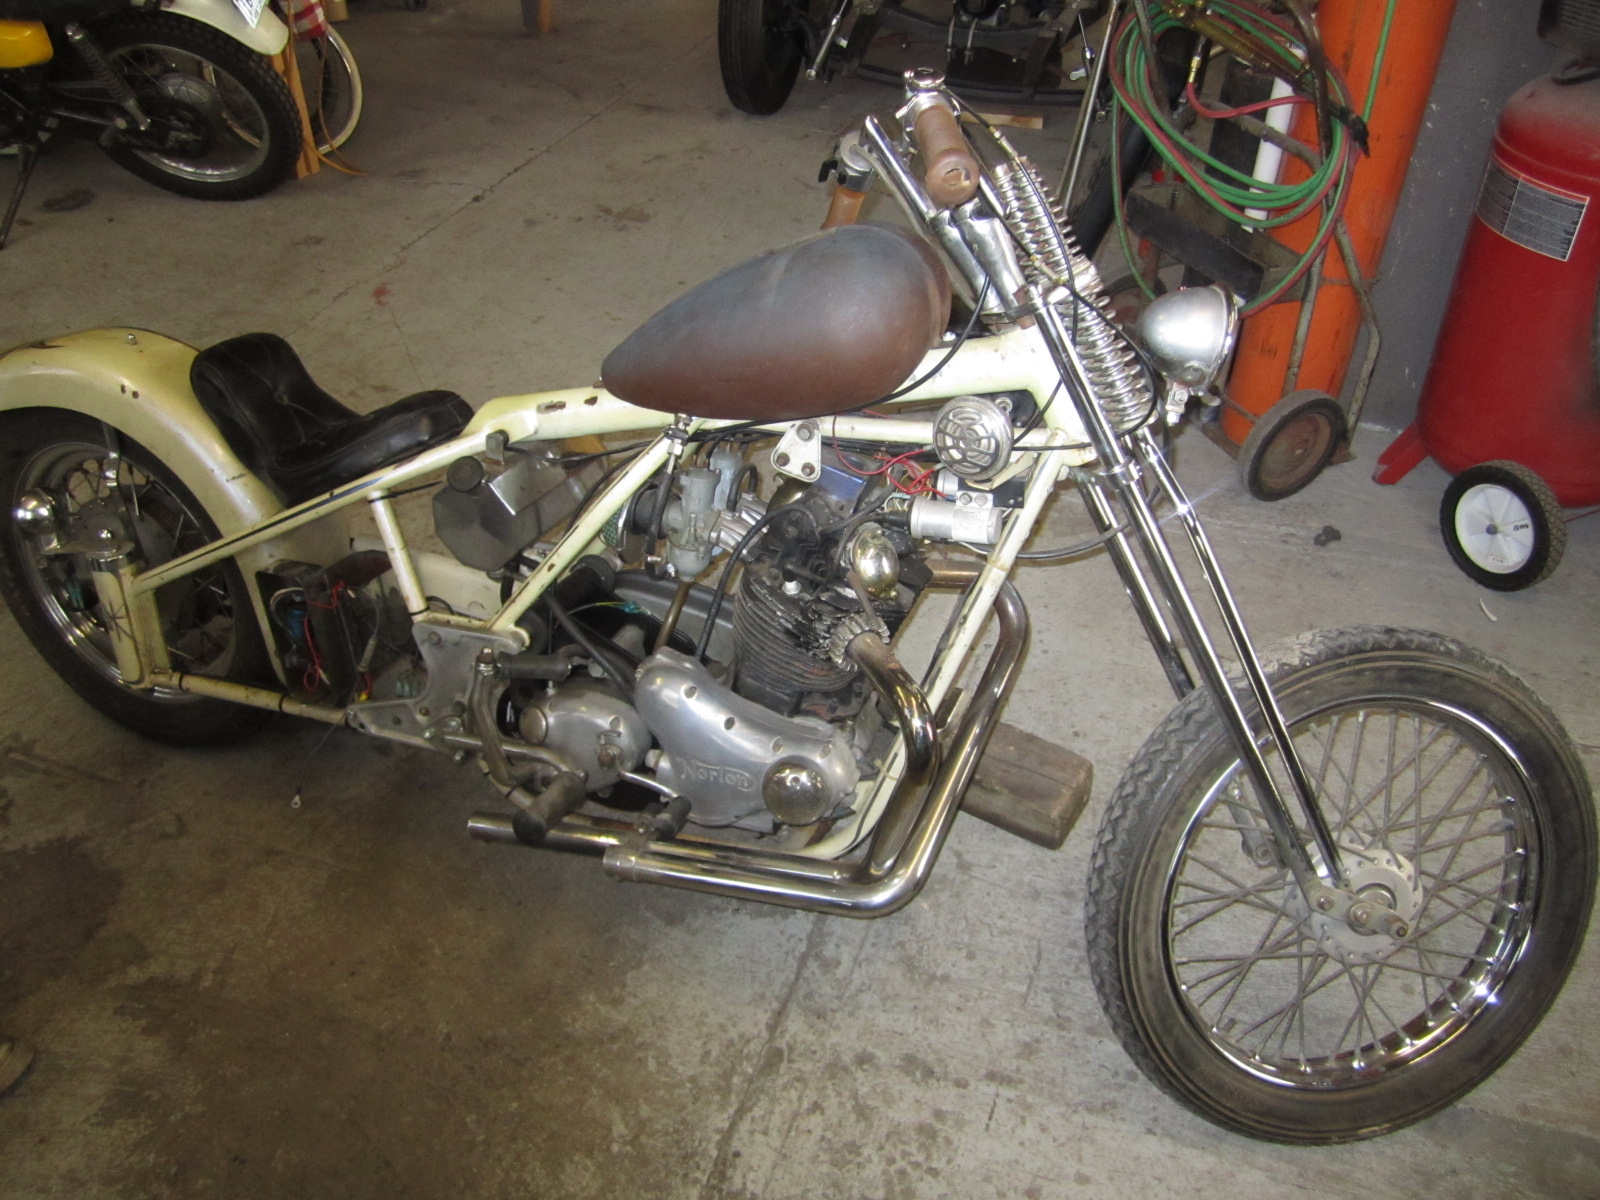 1974 Norton Commando Chopper My Buddy Just Picked This Up